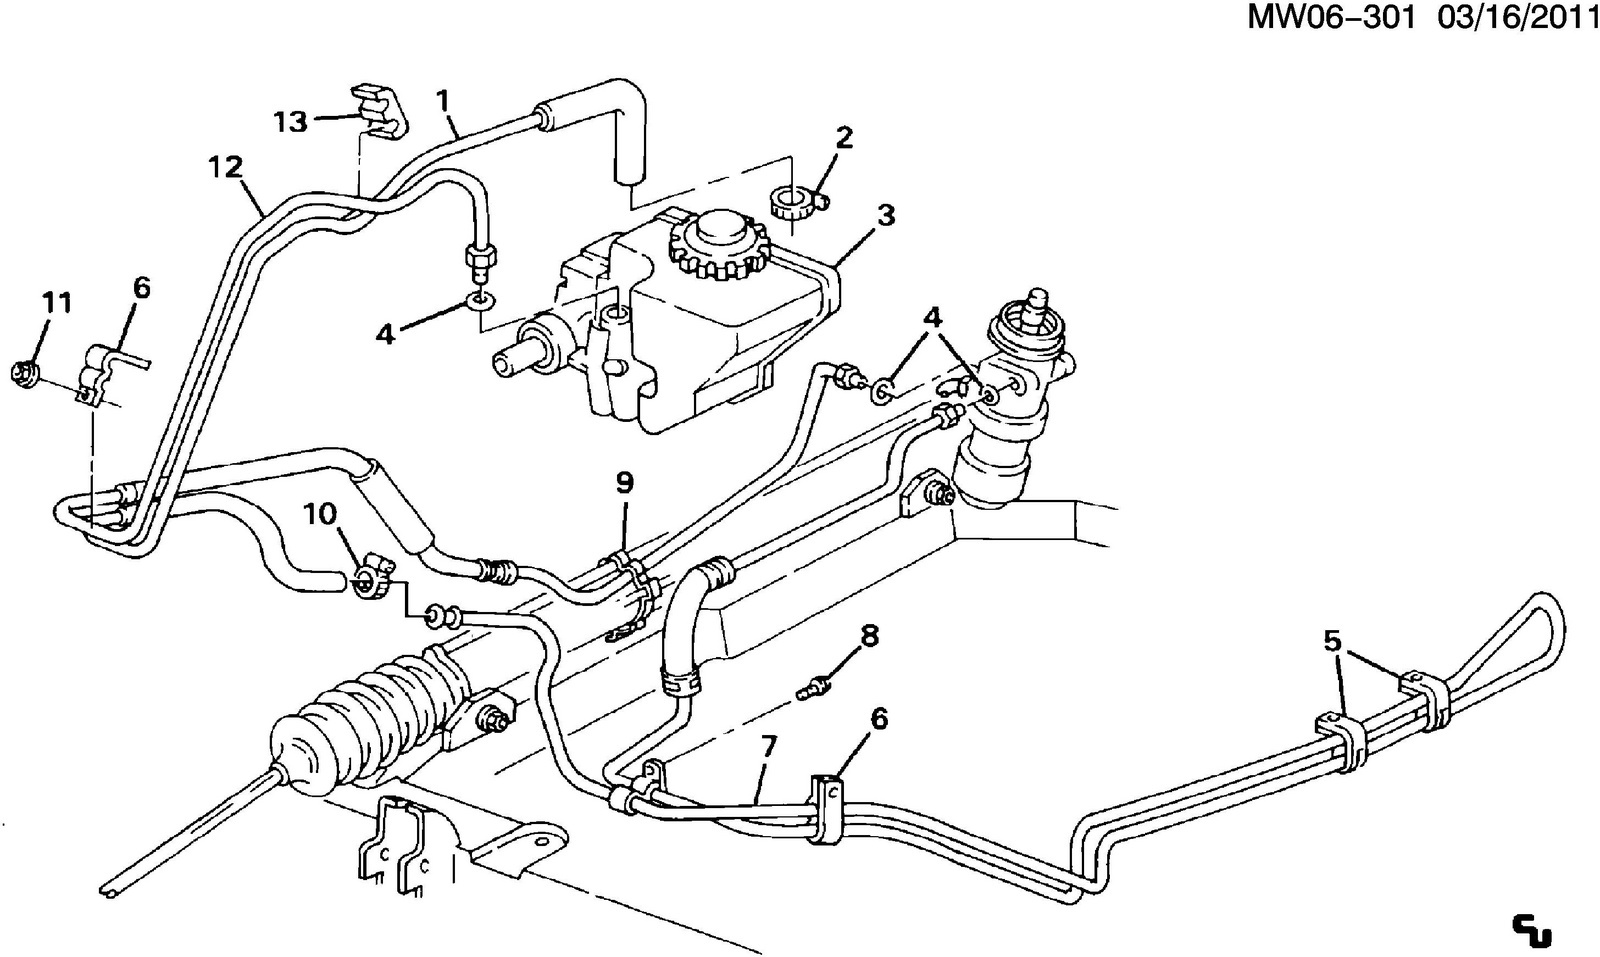 ford mustang power steering hose diagram wiring diagram. Black Bedroom Furniture Sets. Home Design Ideas